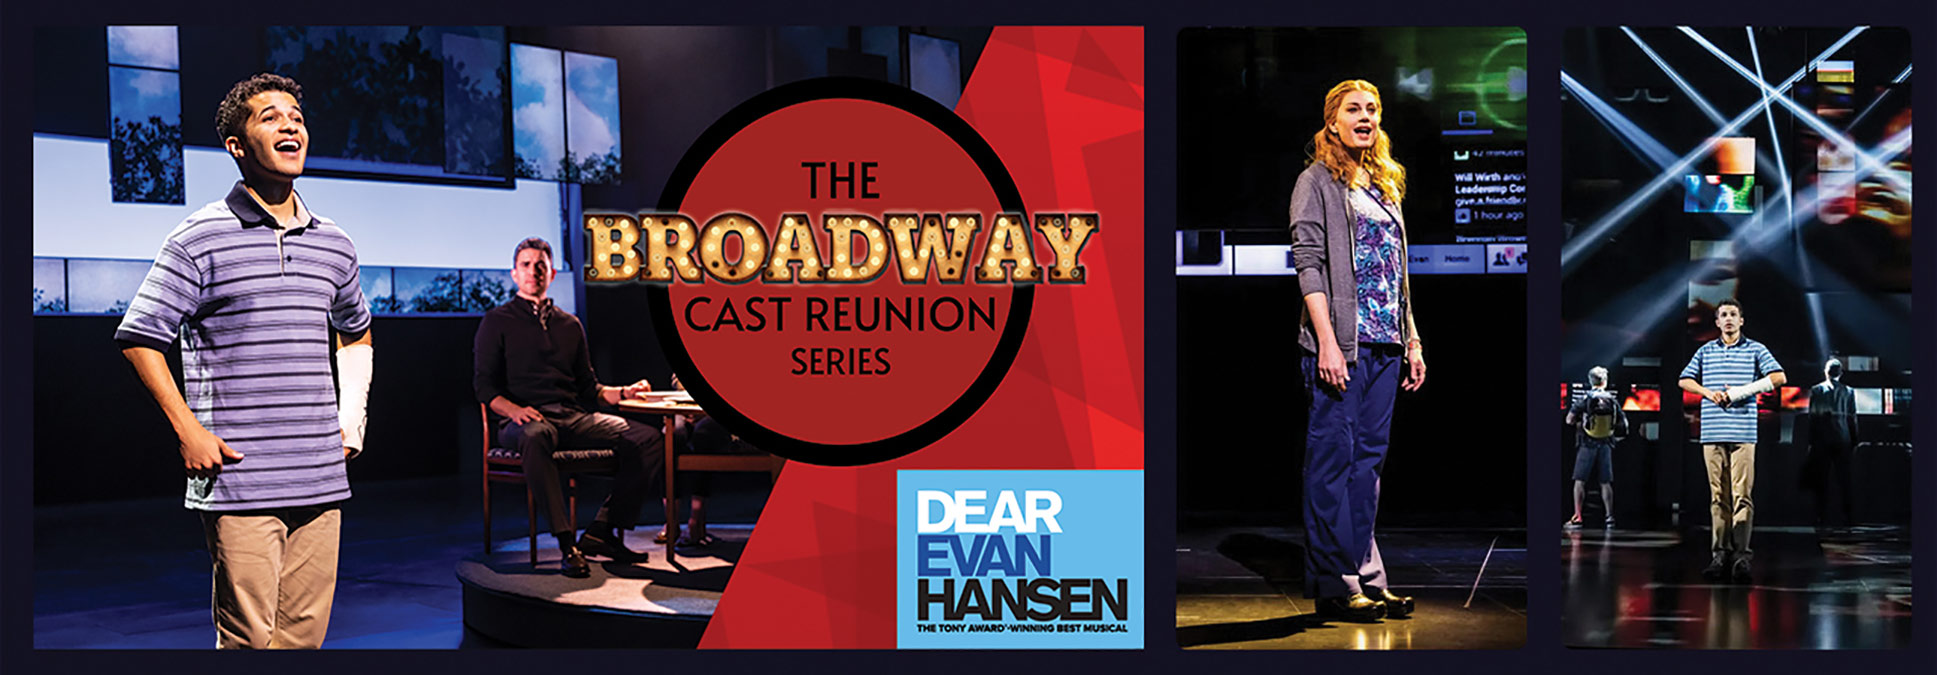 The Broadway Cast Reunion Series Dear Evan Hansen